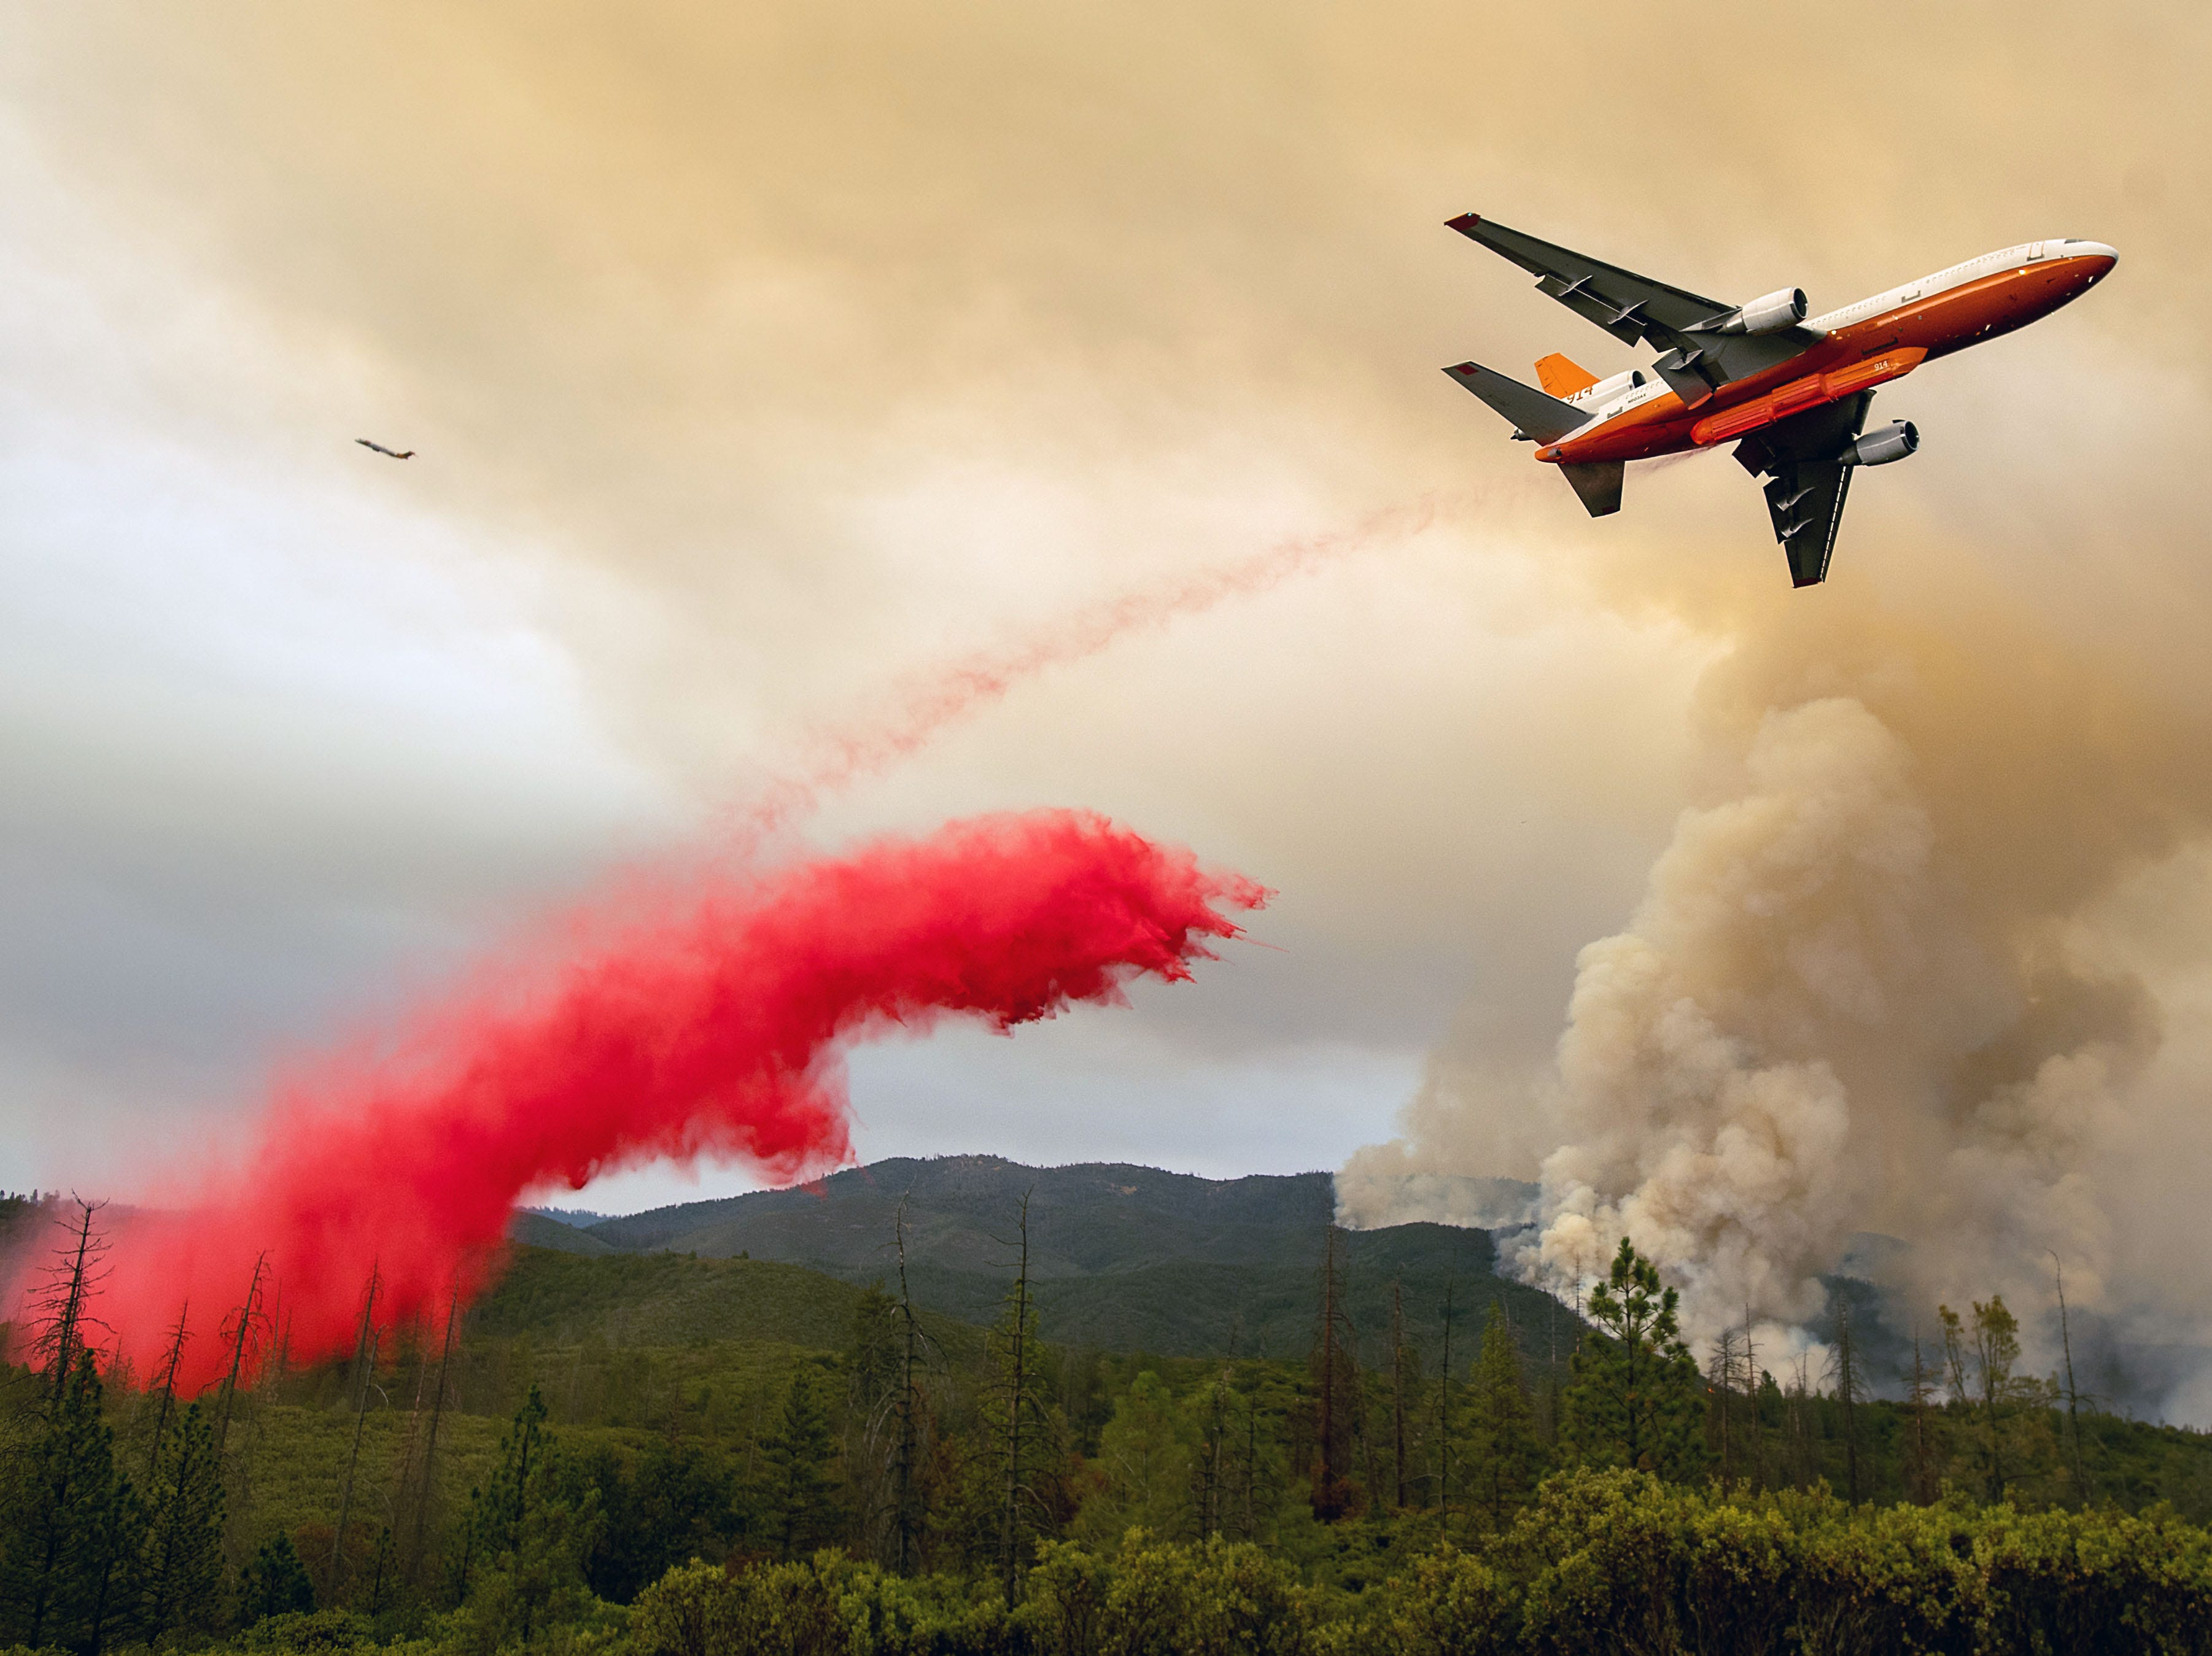 July 21, 2018: An air tanker drops retardant while battling the Ferguson fire in the Stanislaus National Forest near Yosemite National Park, California.